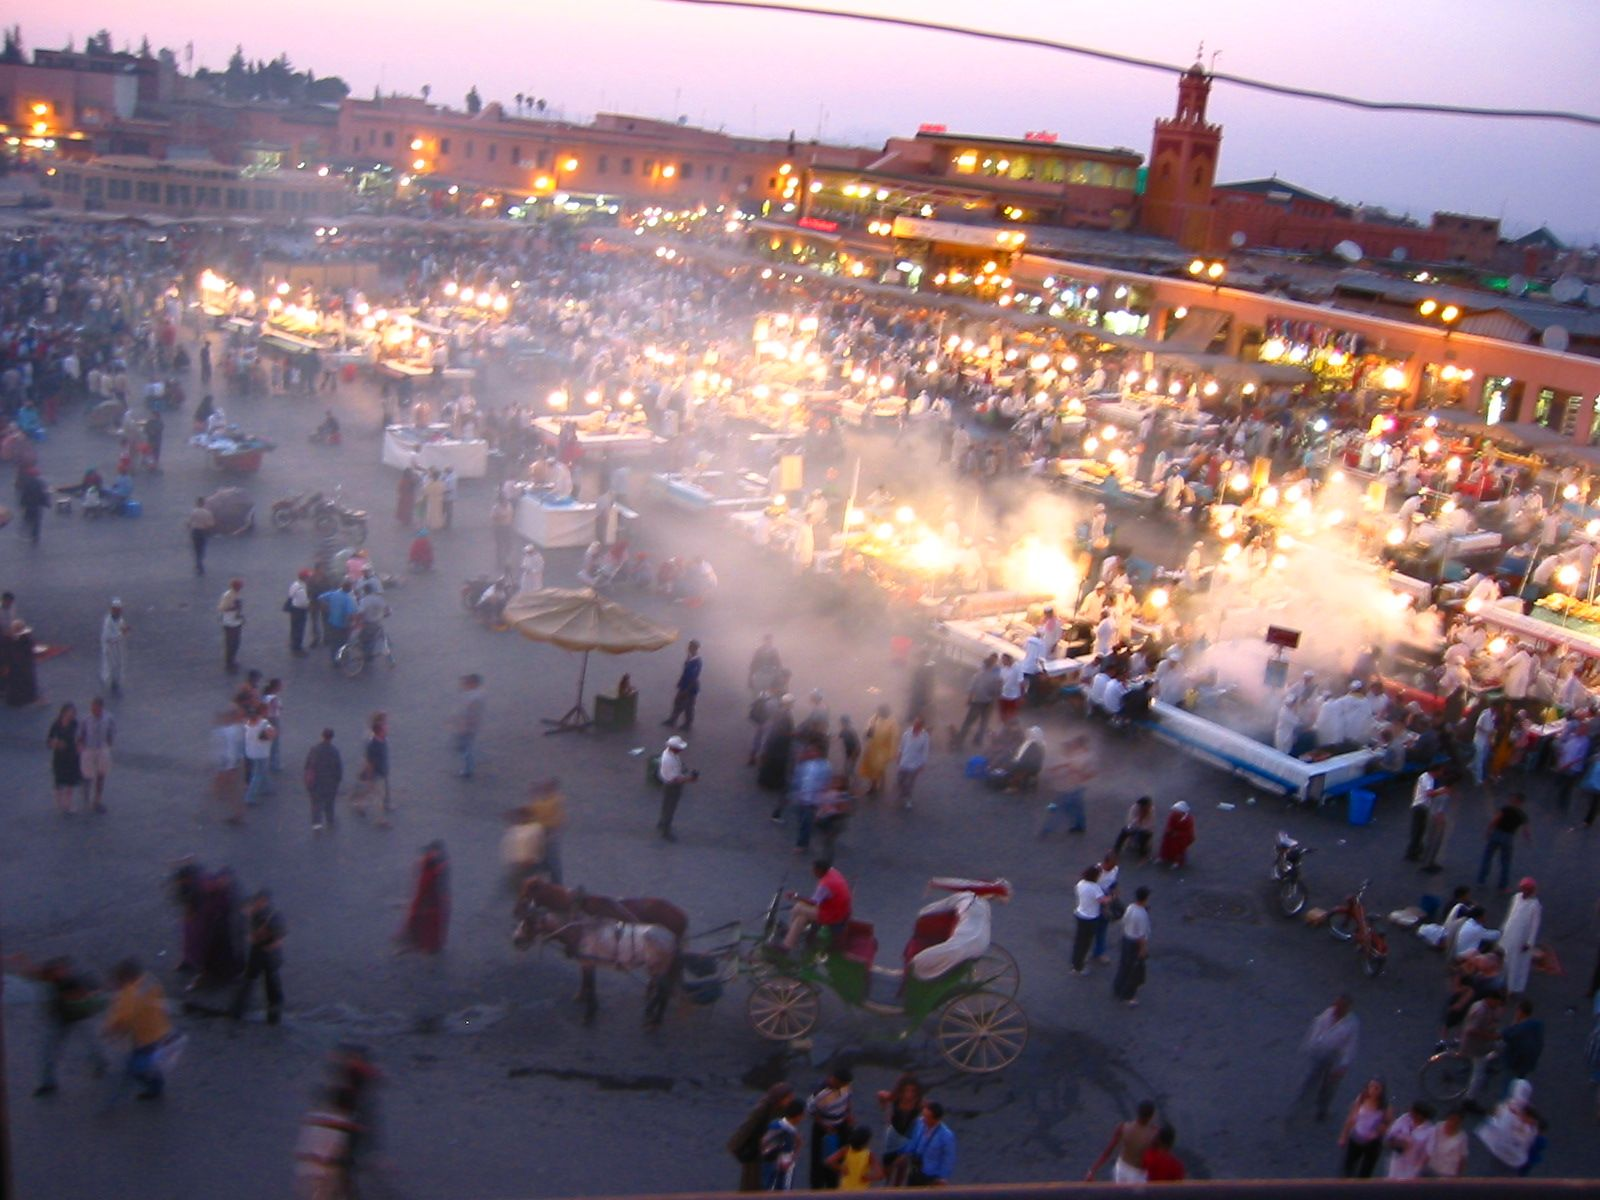 Marrakech Morocco  city photo : ... el Fna. Photo credit: http://icspac.net/marrakech/images/marrakech